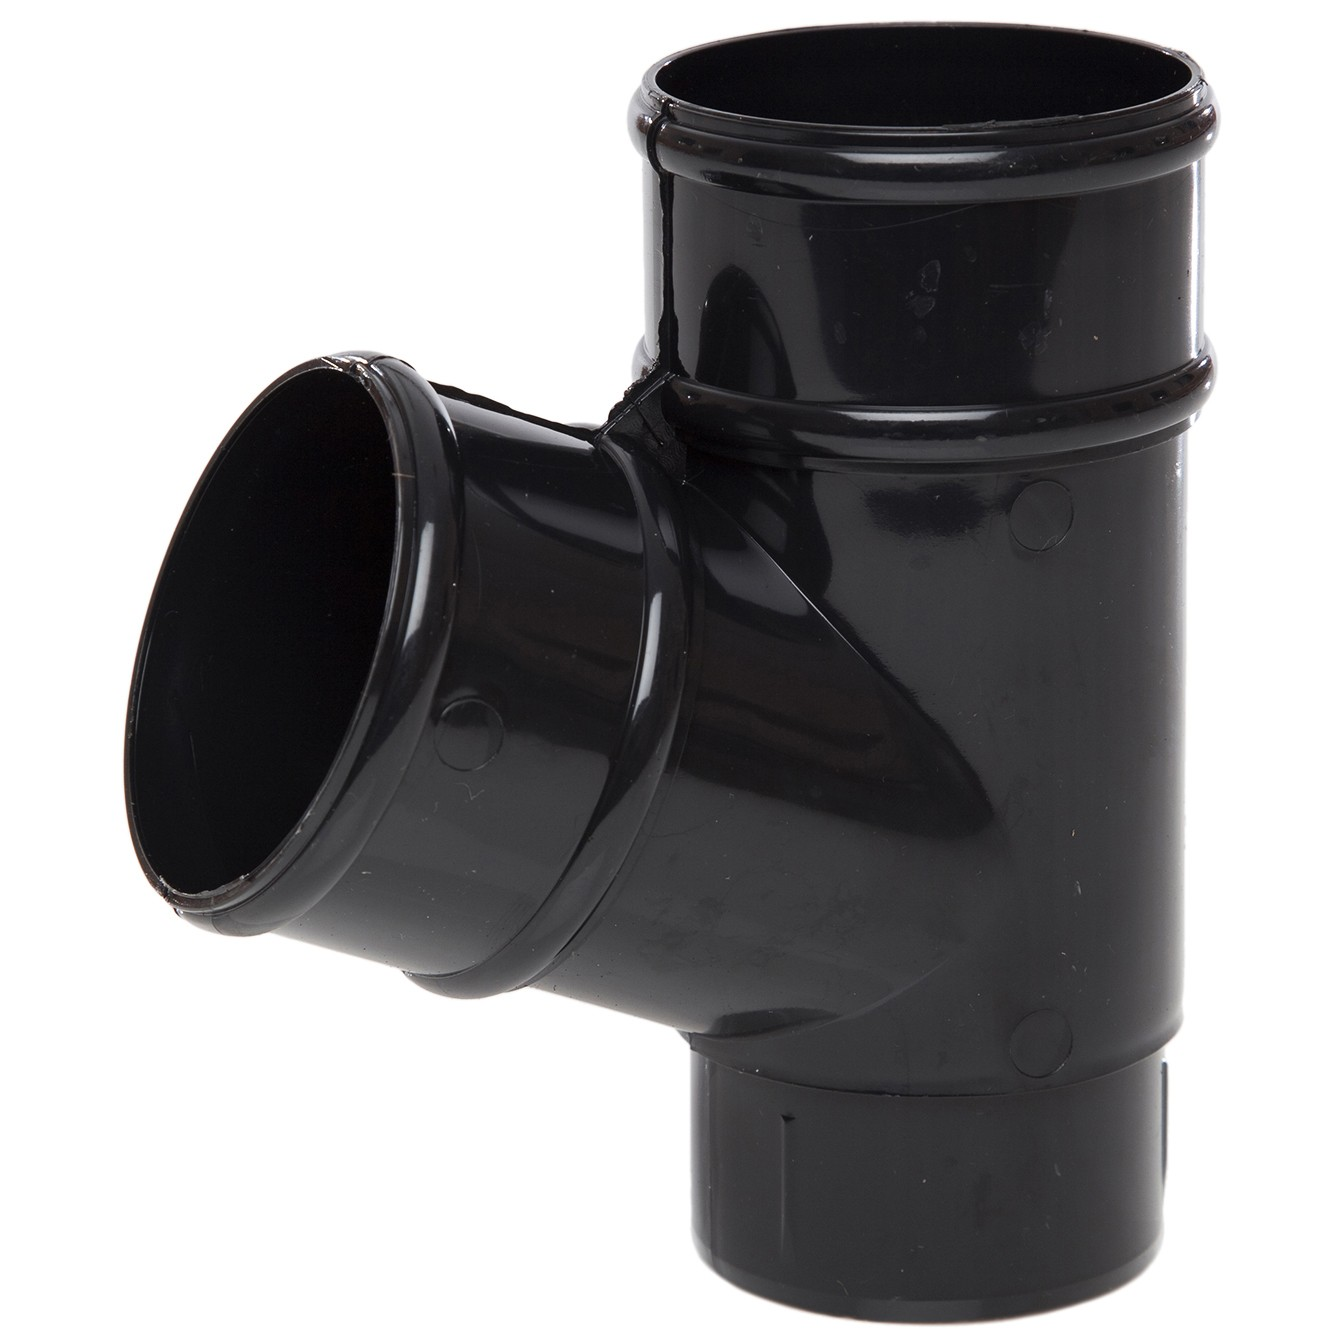 Polypipe 68mm Round Down Pipe 112.5 Degree Branch - Black